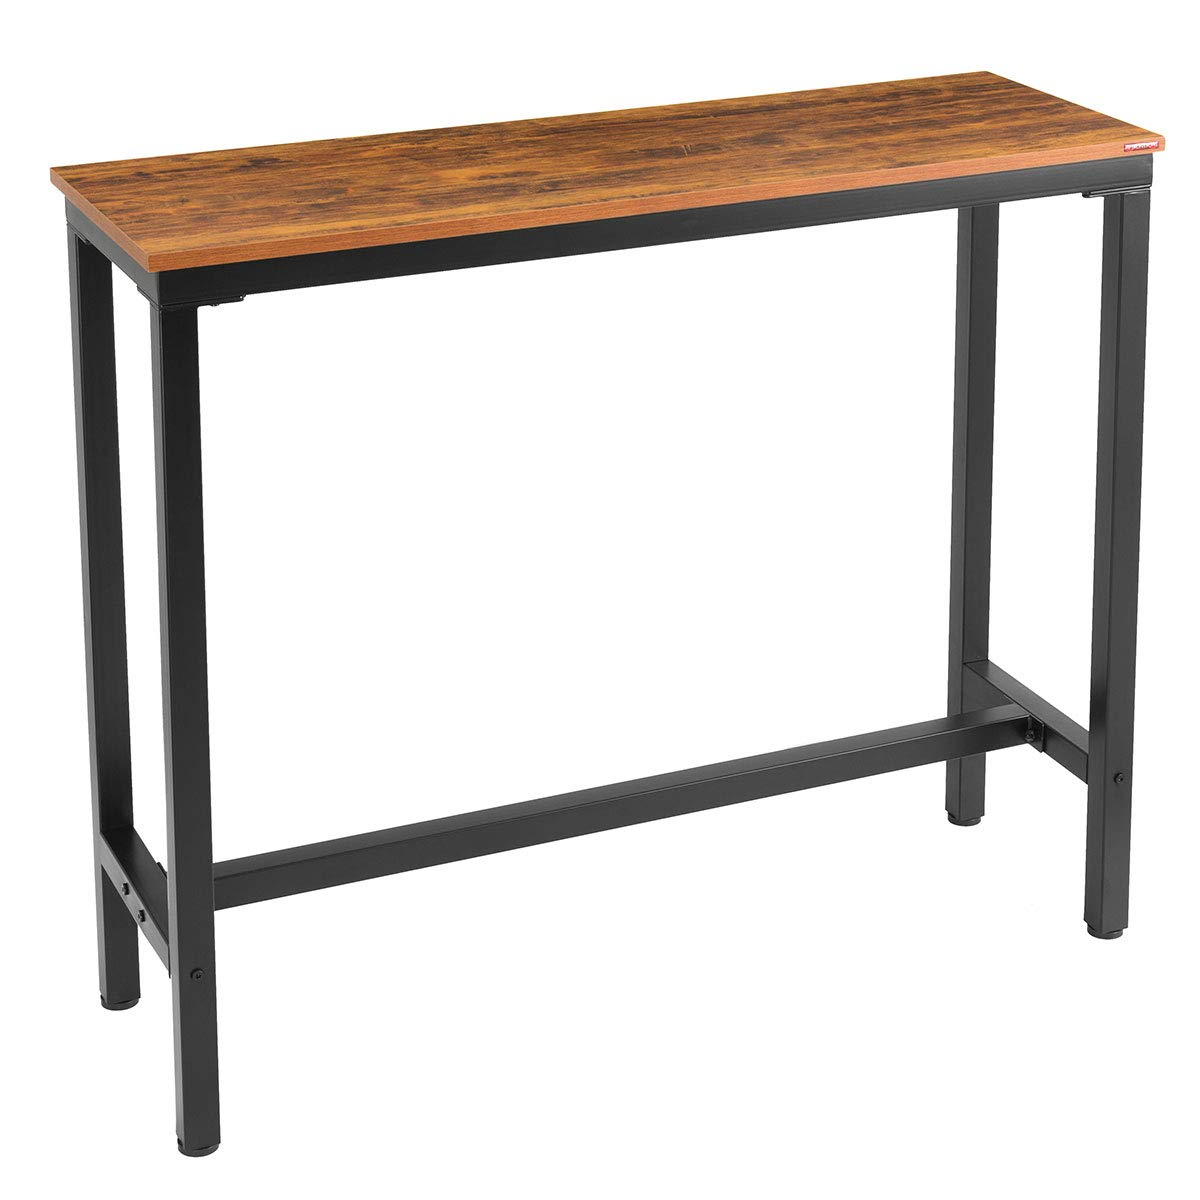 Mr IRONSTONE Bar Table 47 Pub Dining Height Table Bistro Table with Vintage Textured Top Indoor USE ONLY